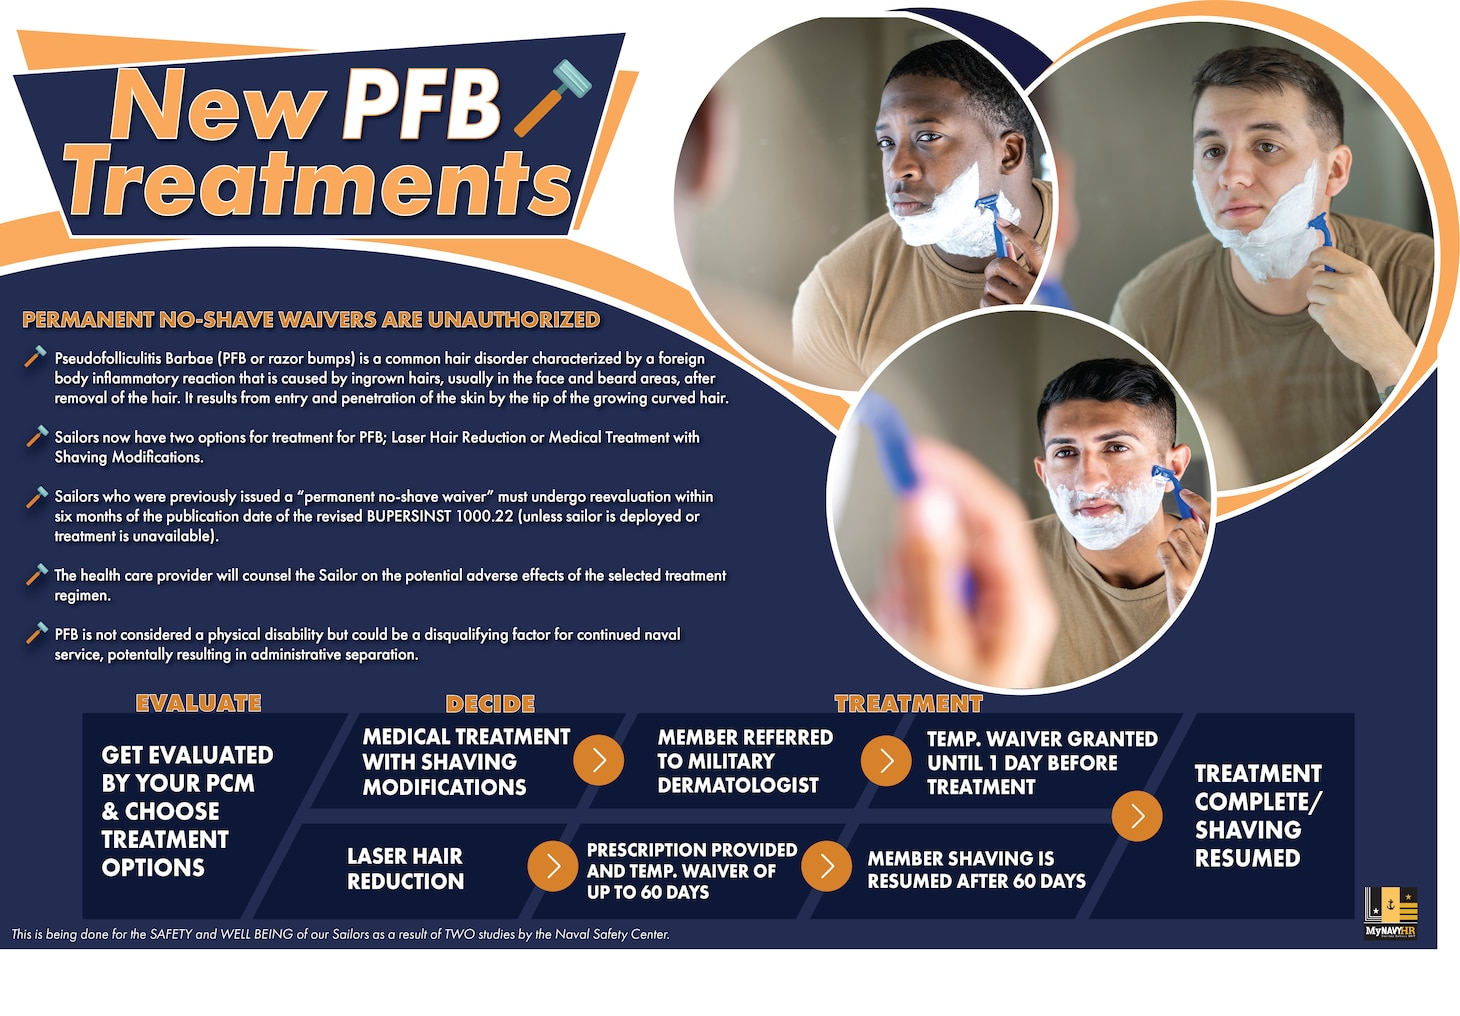 guidelines of the new PFB policy with photos of three males shaving